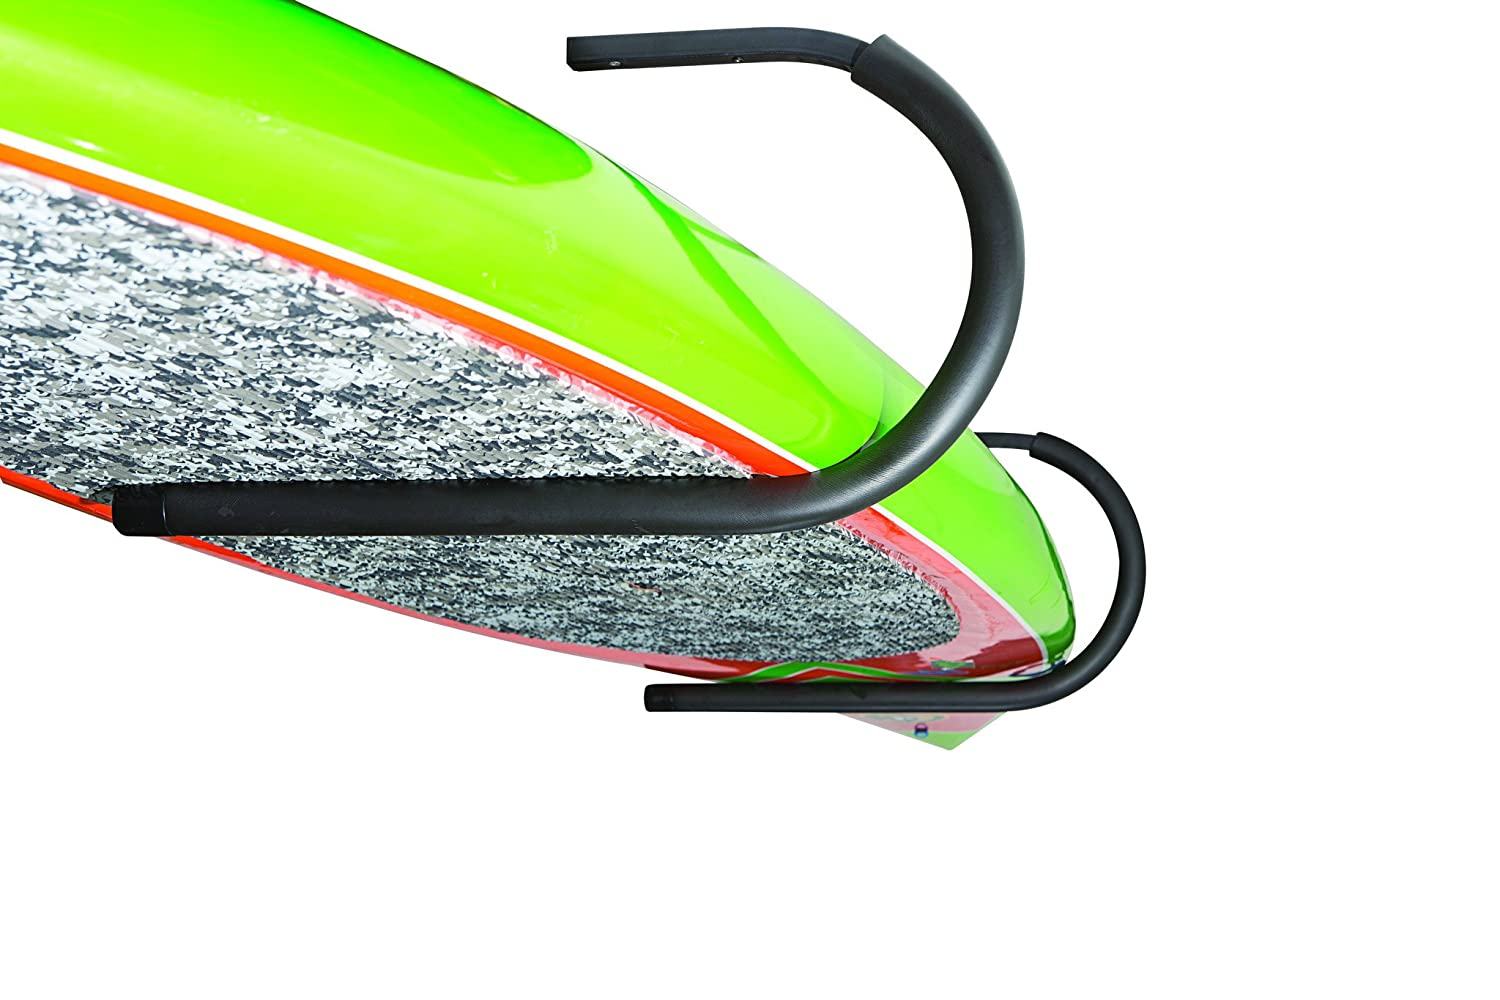 COR Surf Stand up Paddle SUP Wall or Ceiling Rack Also Works with Longboards and Shortboard Surfboards. Weather Resistant Durable Protective Foam Rack-03